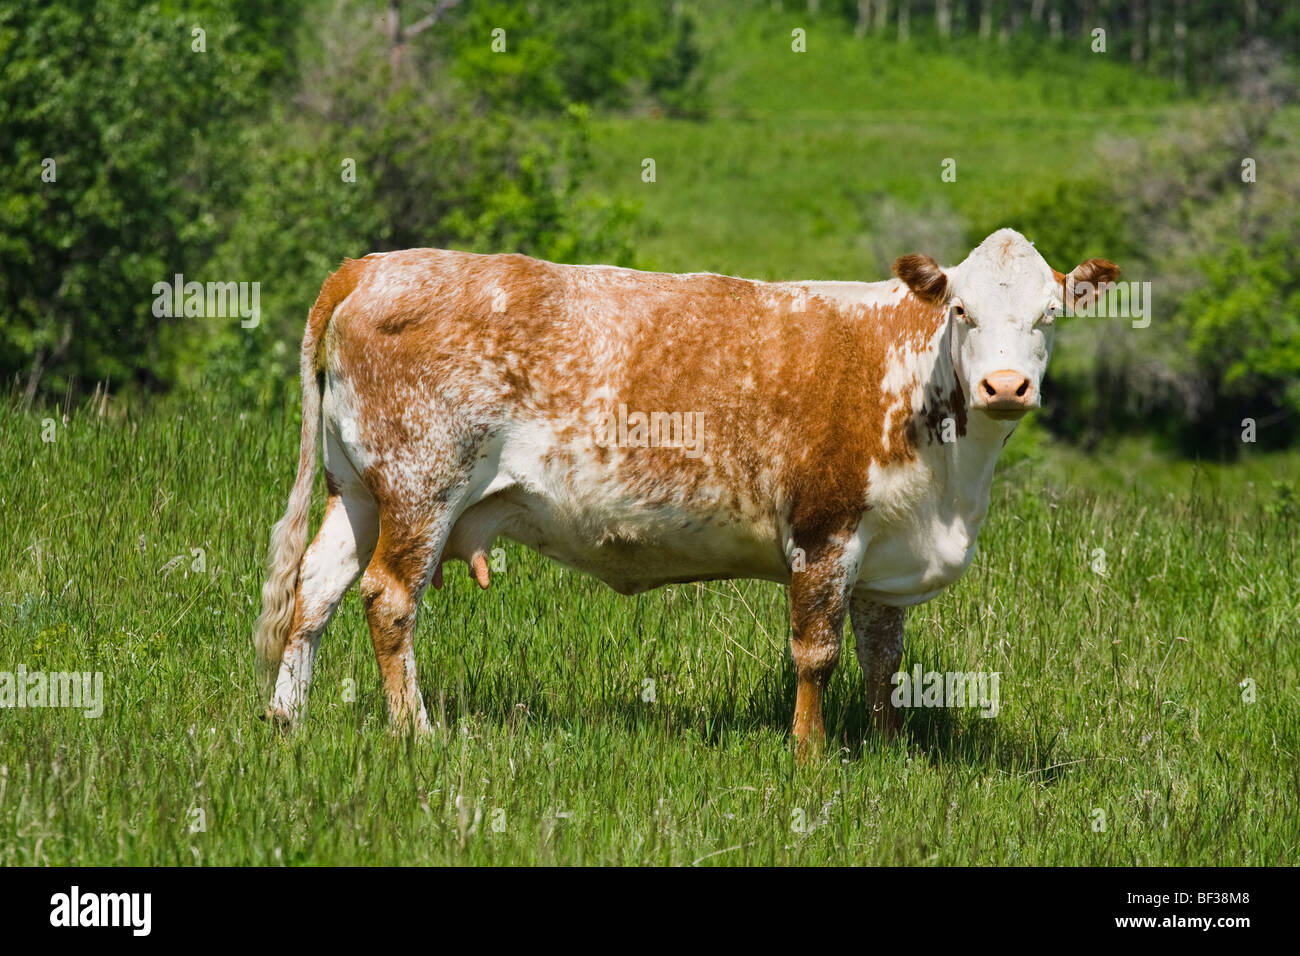 Livestock - Roan shorthorn beef cow standing in a green pasture / Alberta, Canada. - Stock Image